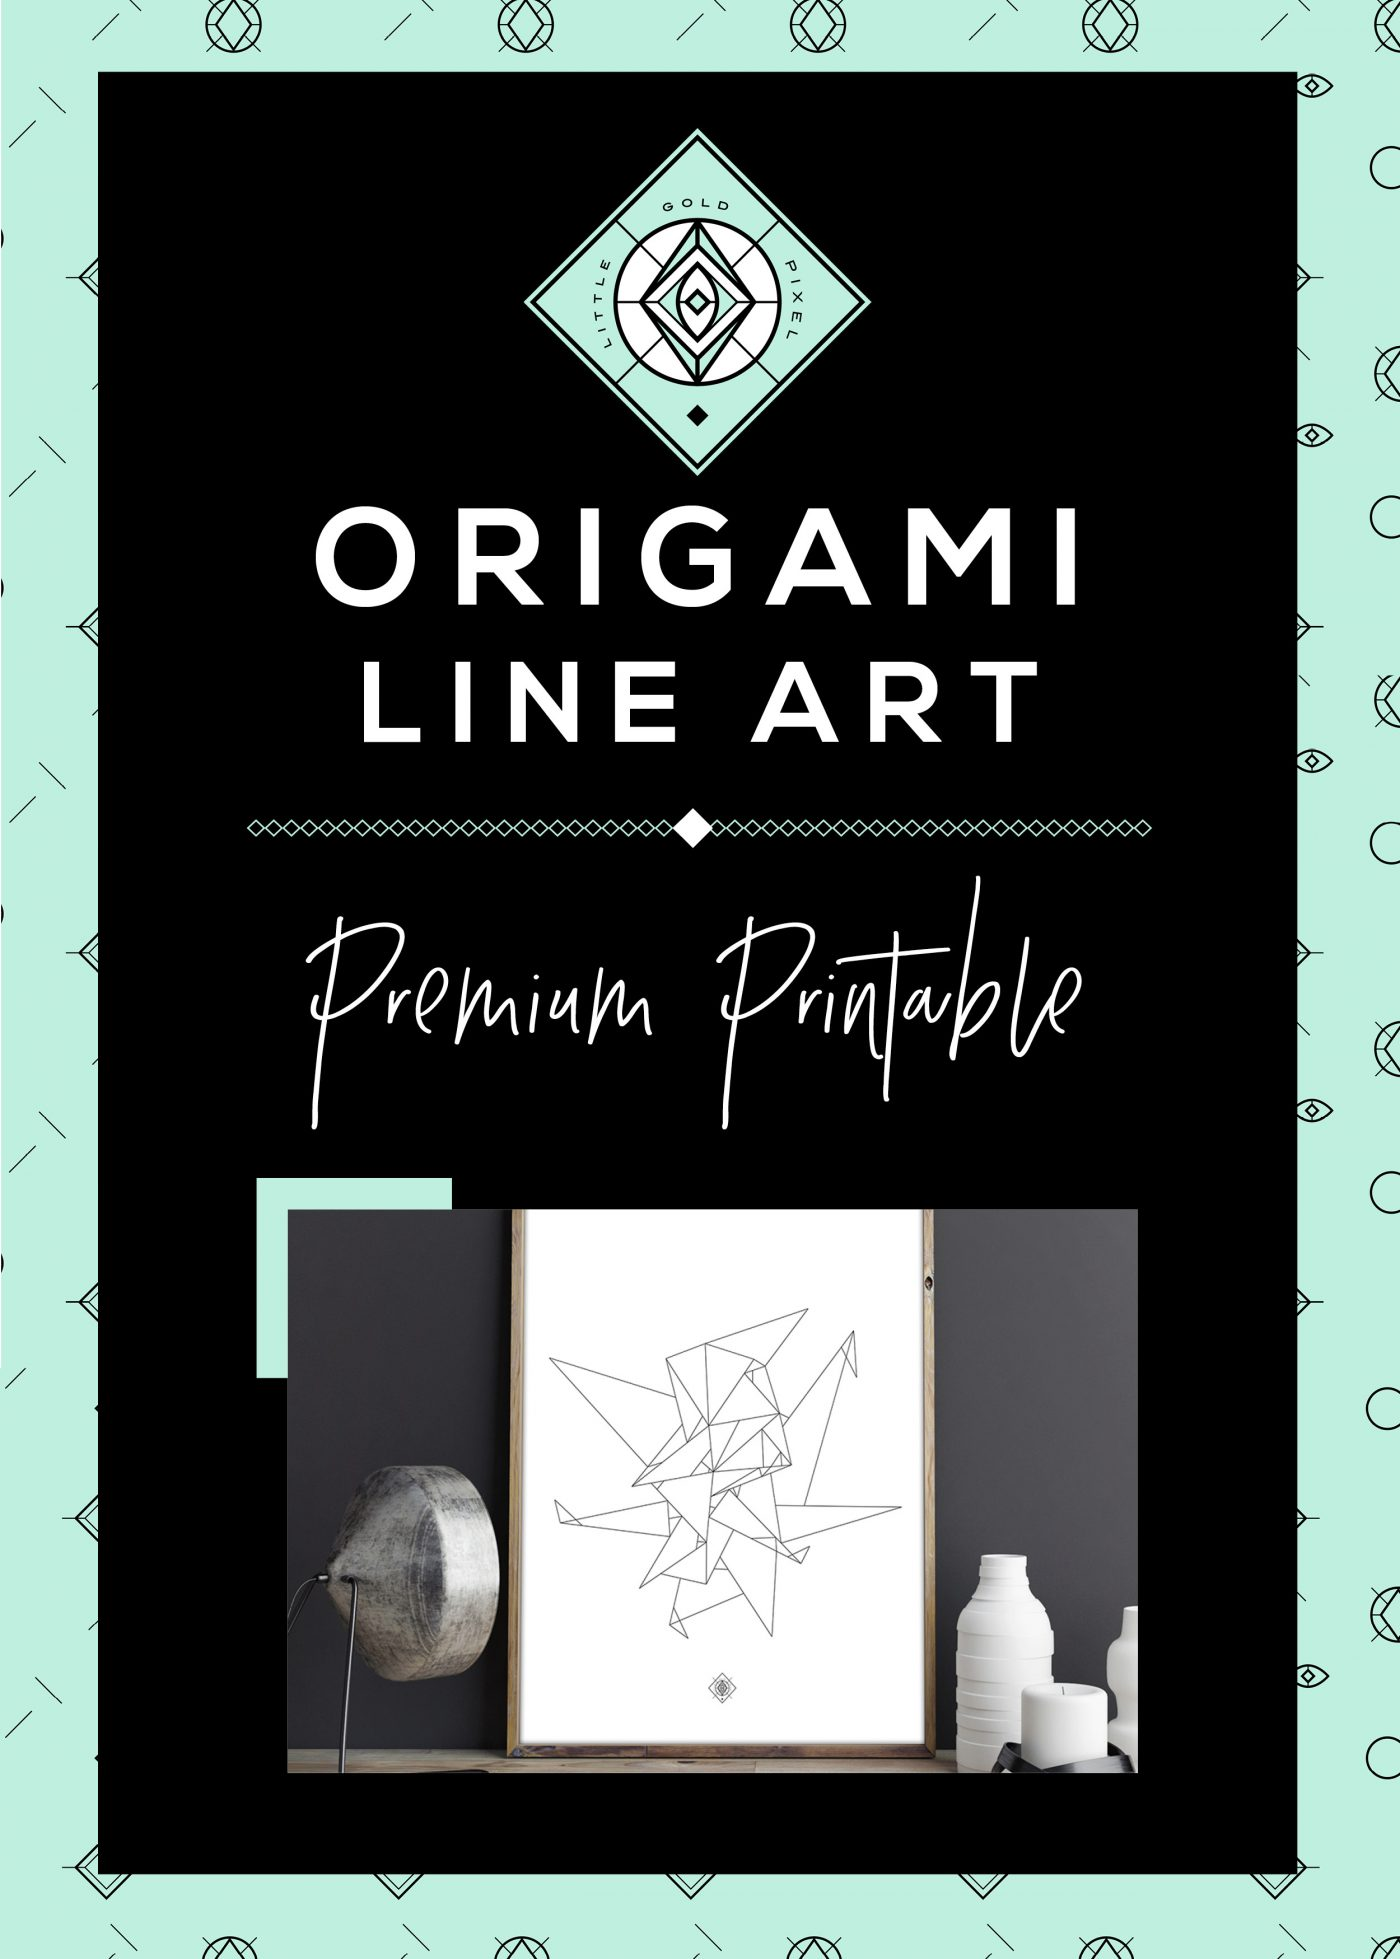 Origami Line Art Free Printable • Little Gold Pixel